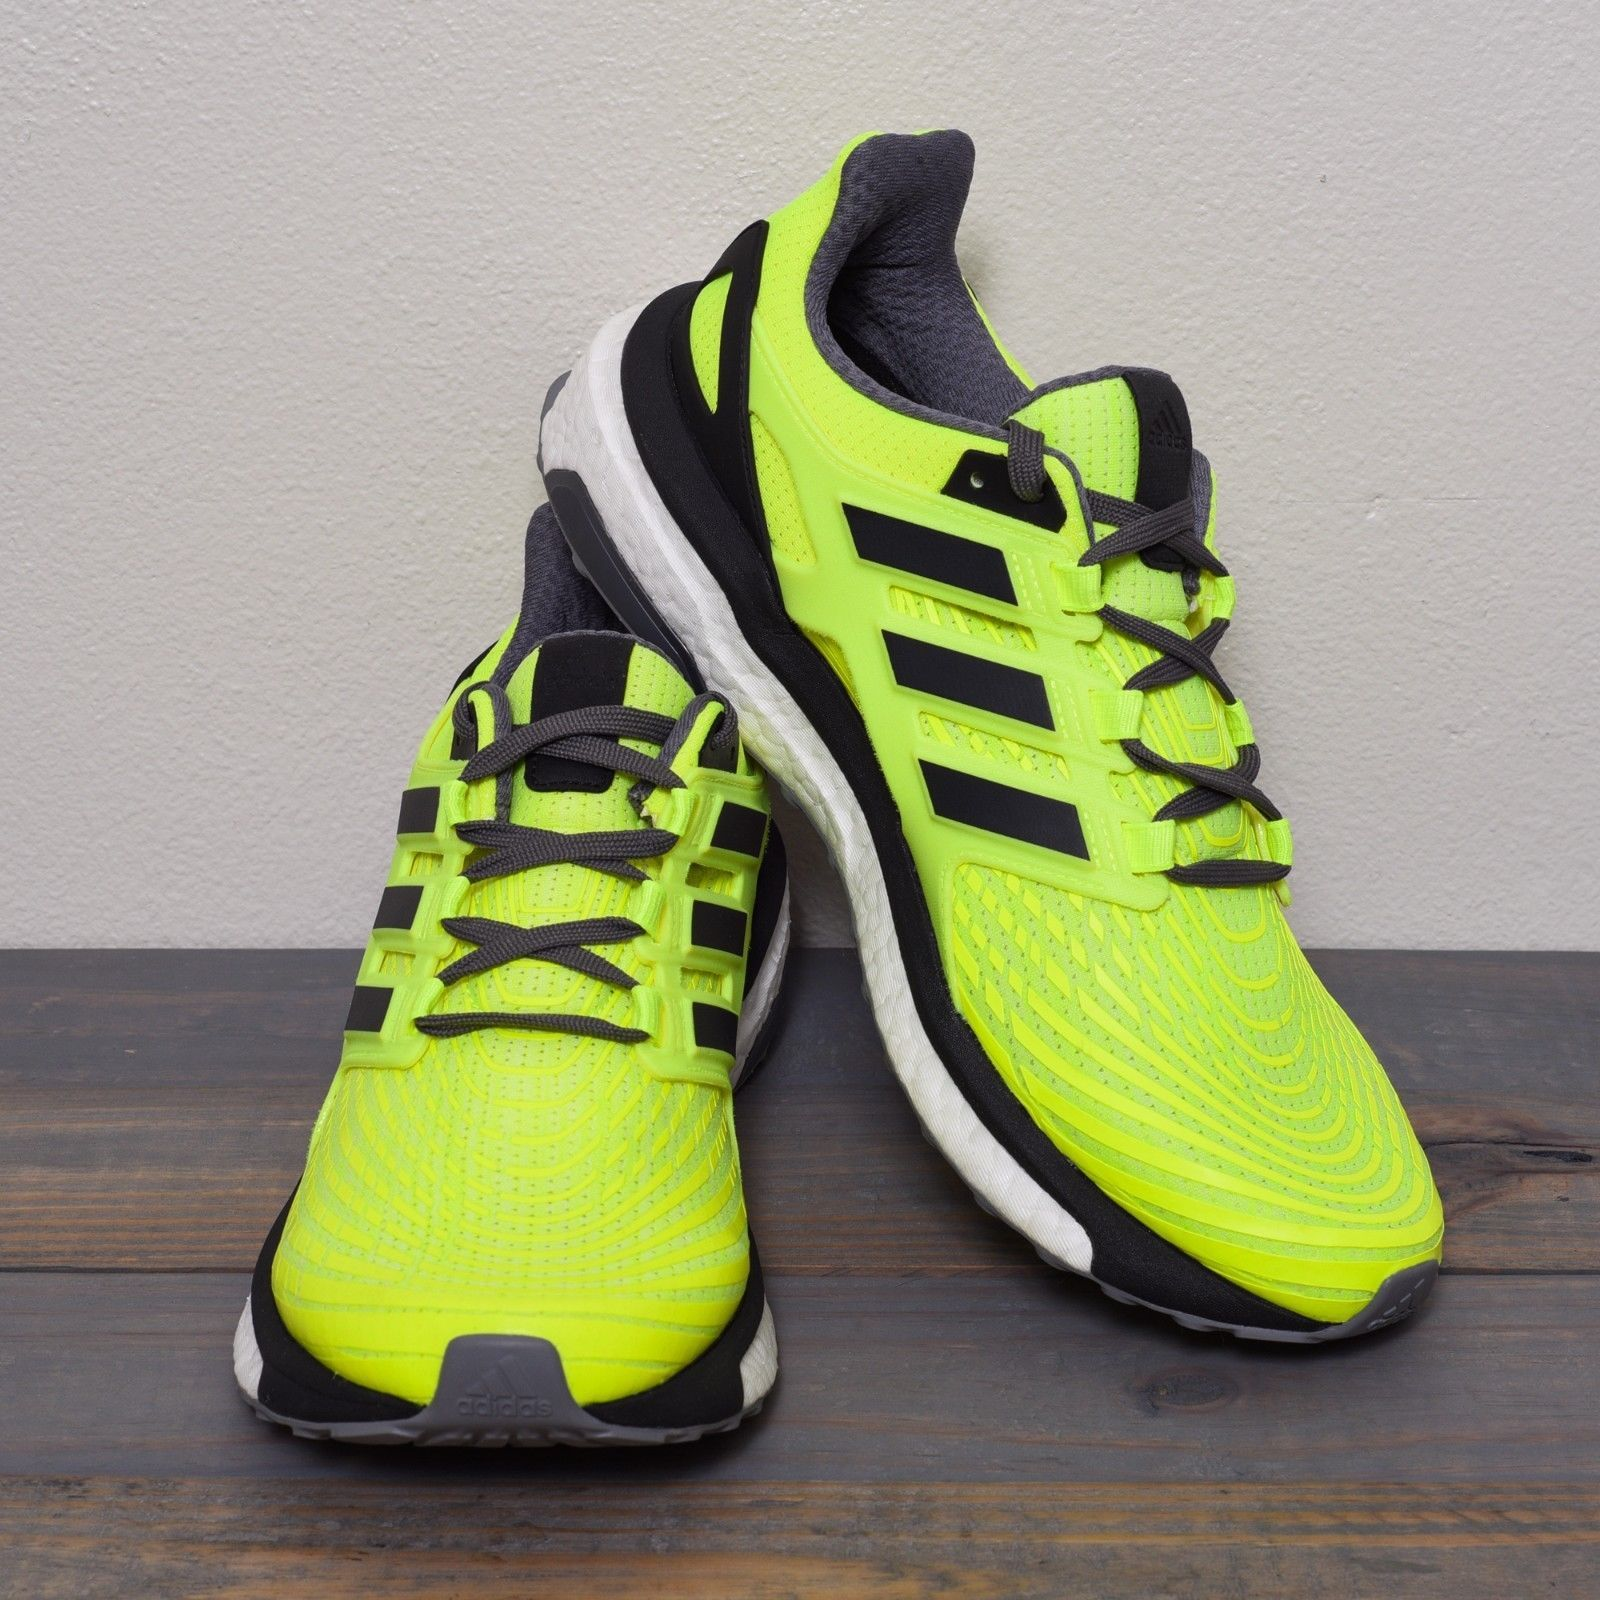 reputable site a84b4 f8d54 Adidas Energy BOOST Men s Size 10 Running Shoes Solar Yellow Black Grey  BB3455